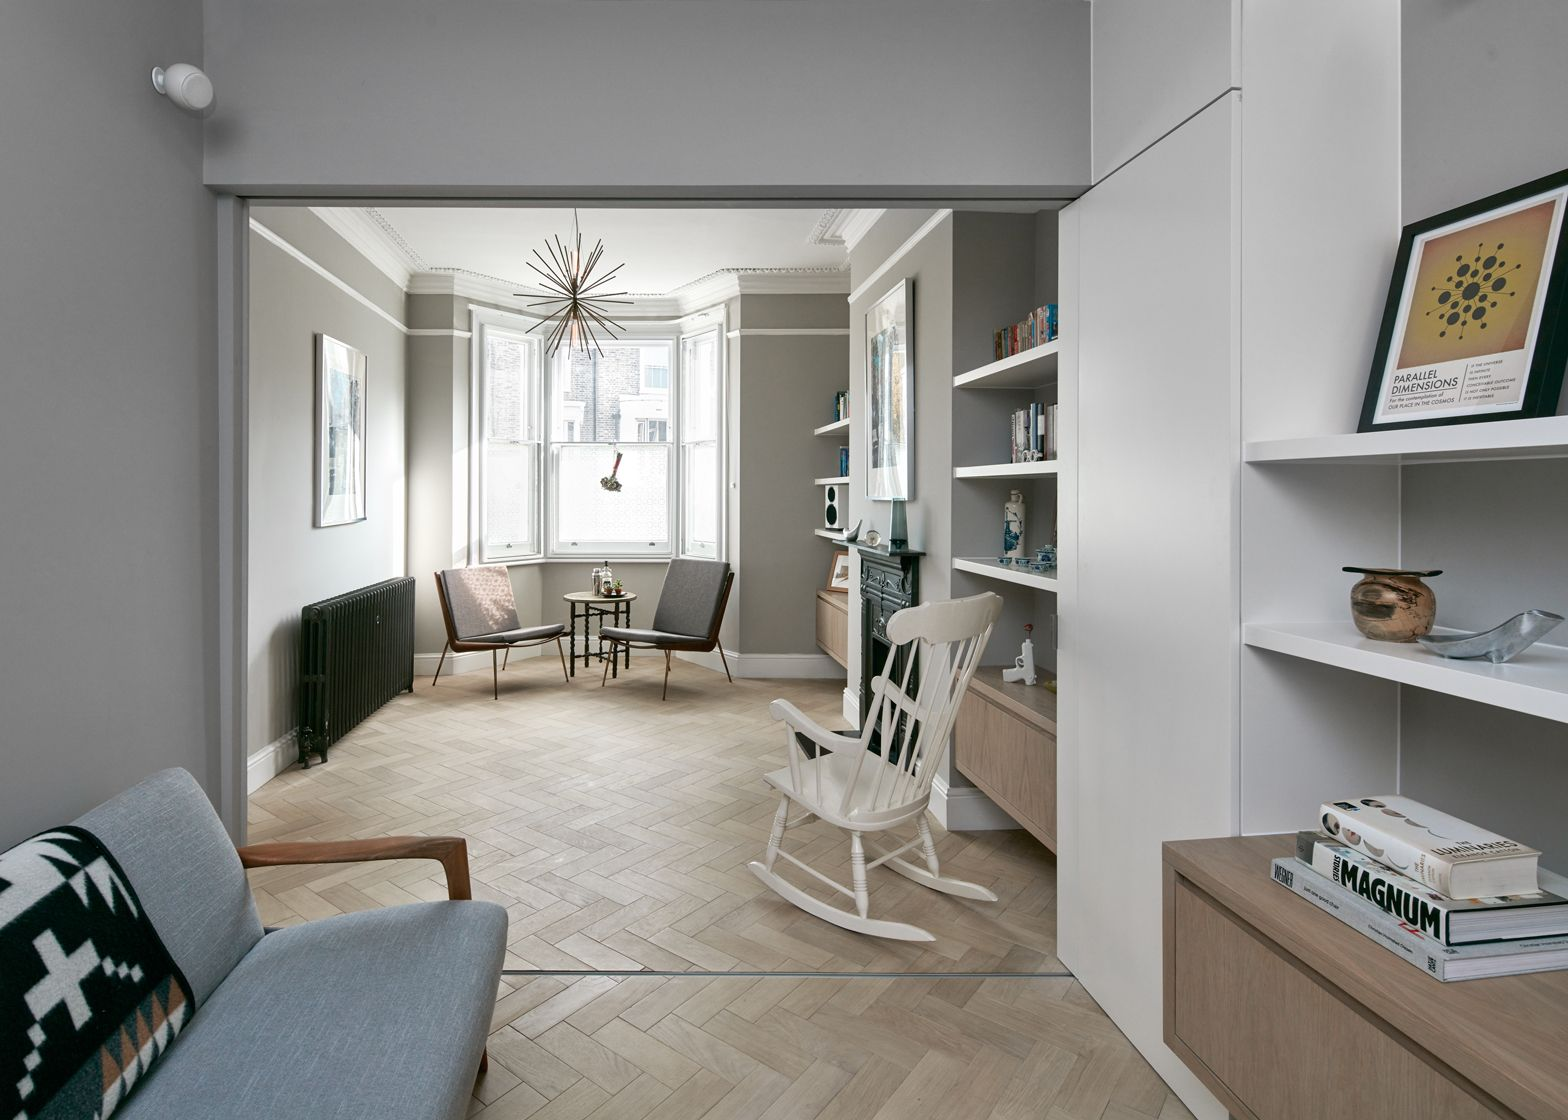 Platform 5 Has Added A Cranked Extension To A Victorian House In Hackney Featuring Surfaces And Fitted Furnitur Best Living Room Design Herringbone Floor House